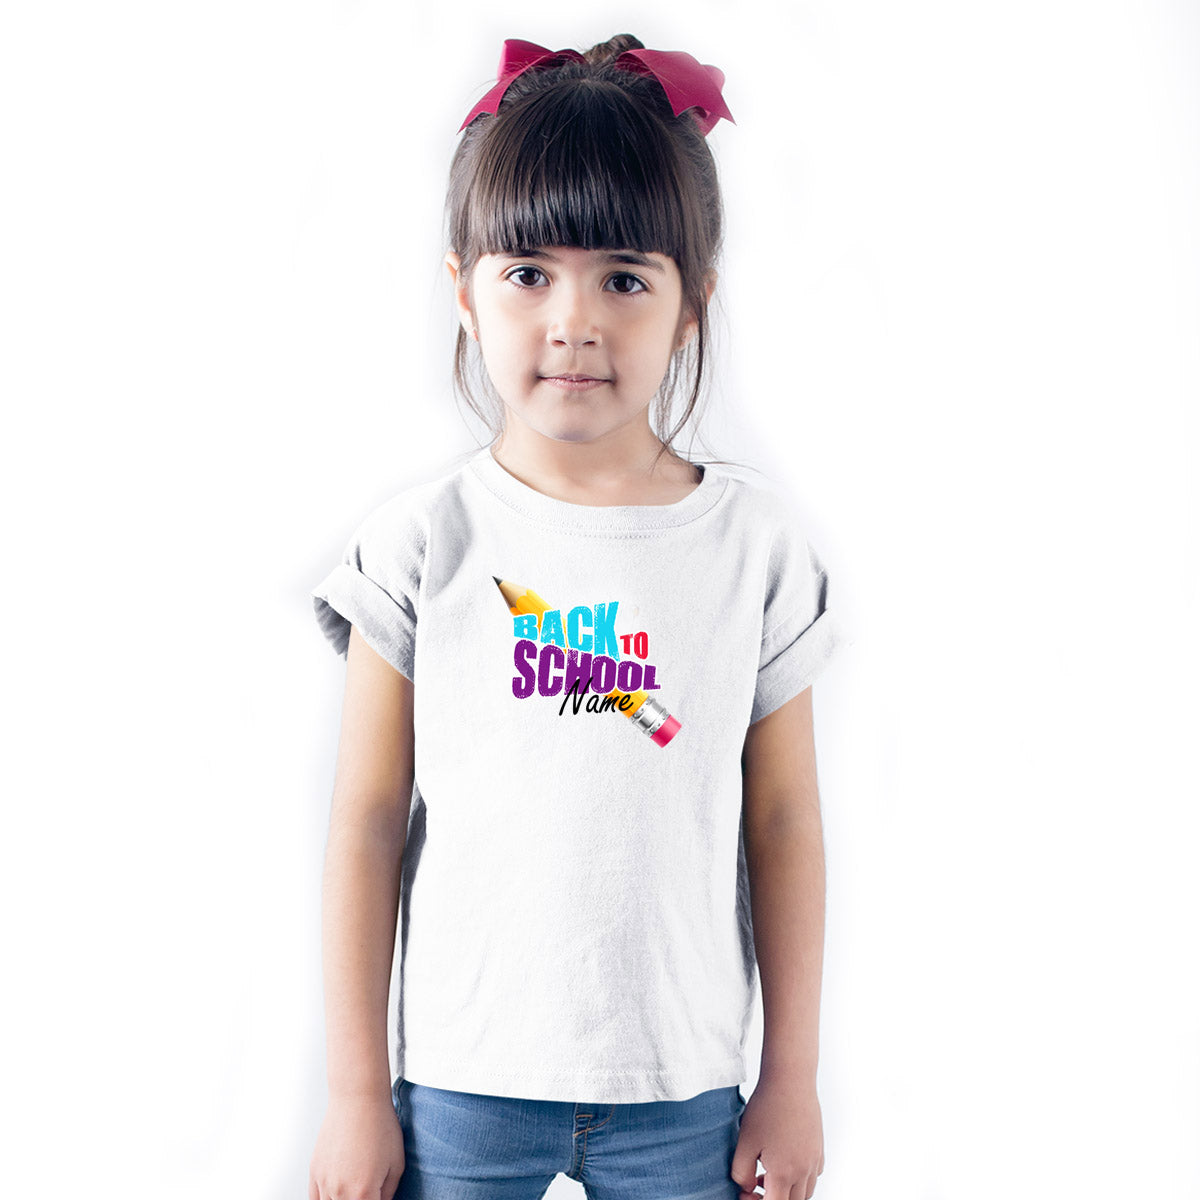 Sprinklecart Personalized Back to School Poly-Cotton T Shirt for Kids (White)